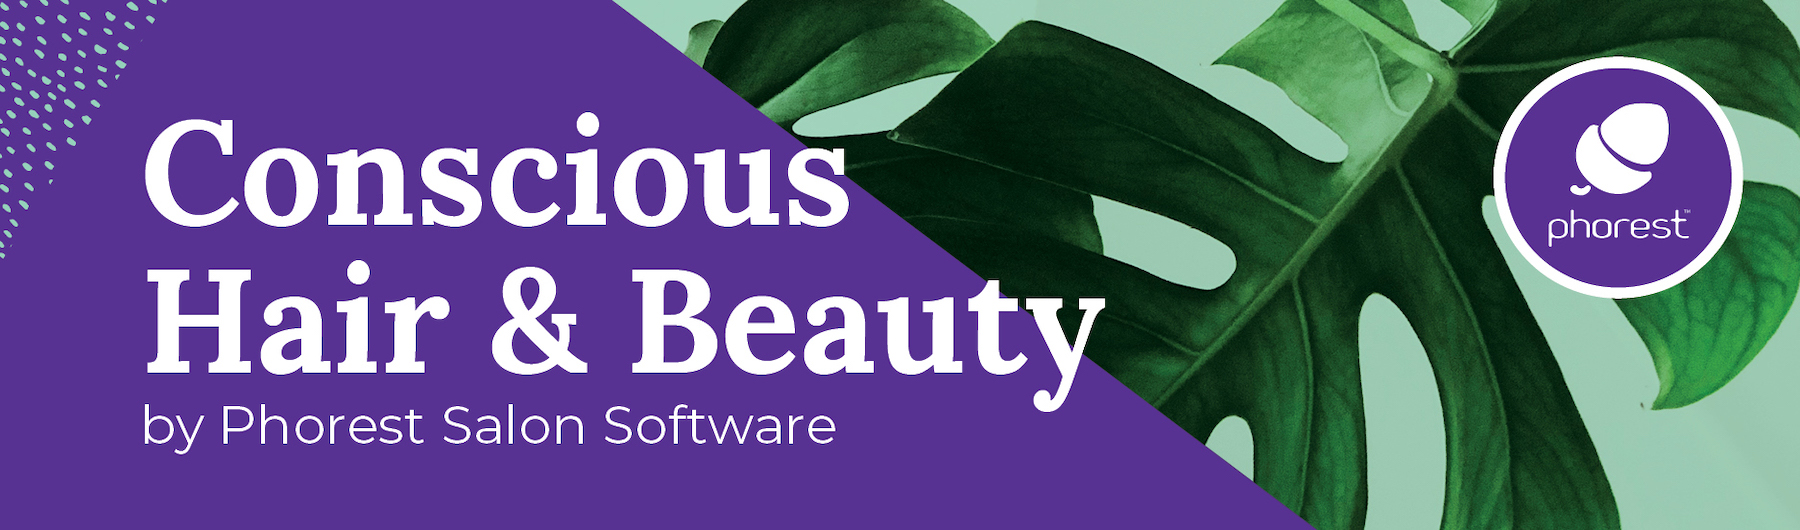 Conscious Hair & Beauty by Phorest Salon Software